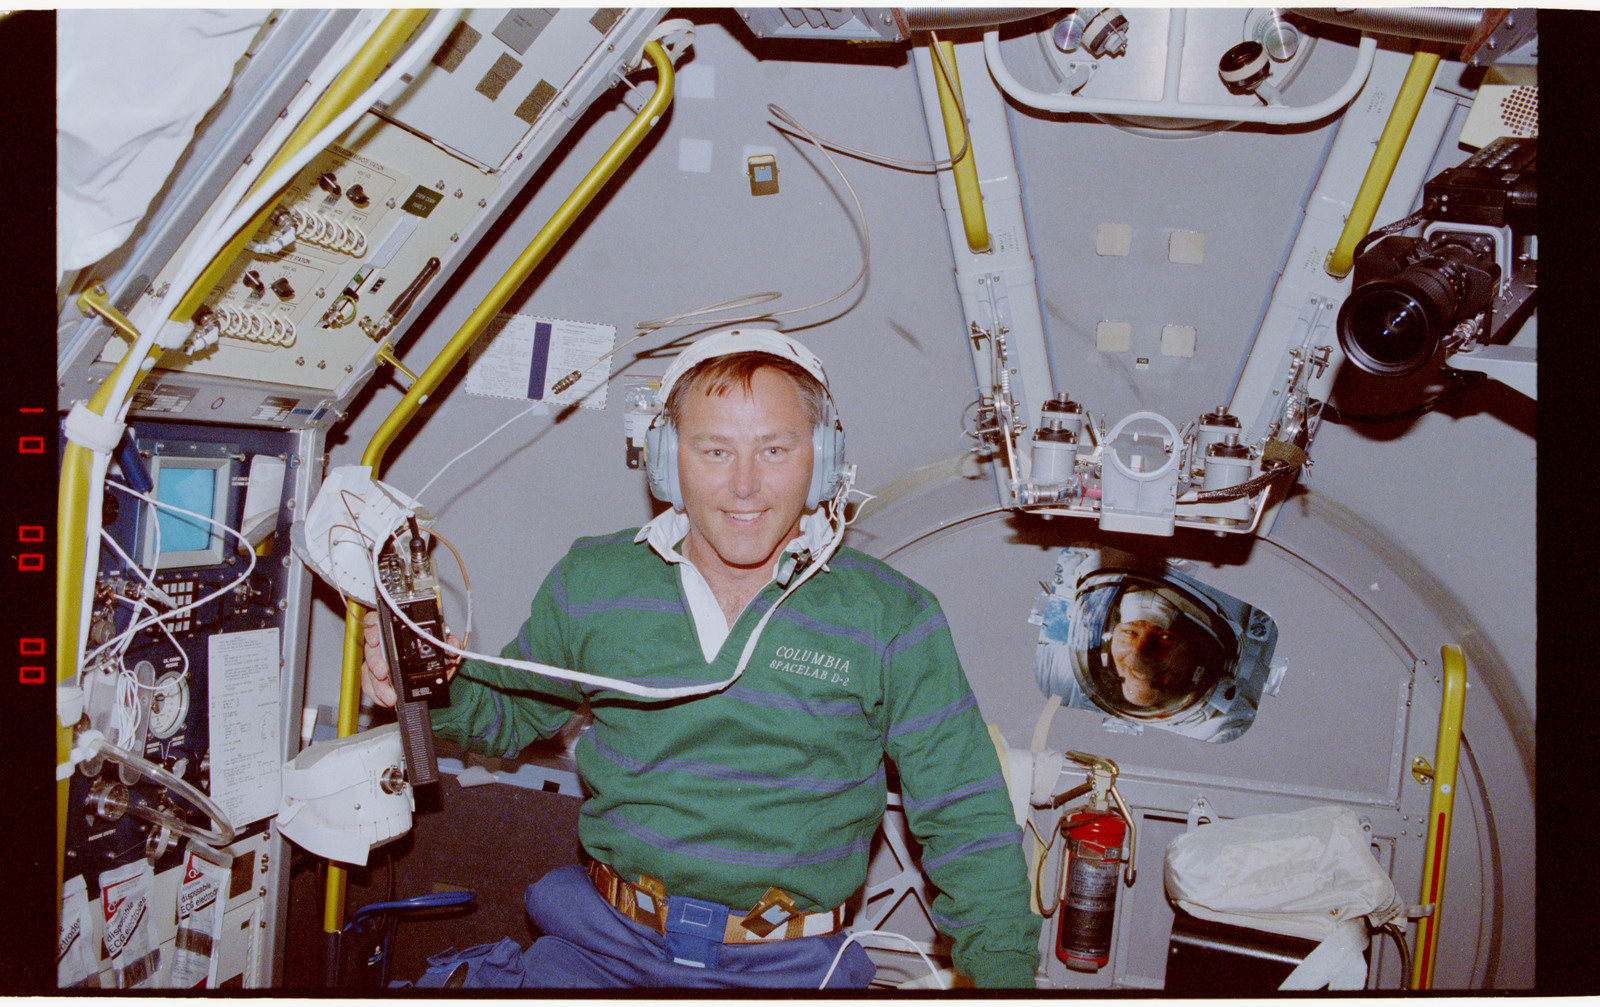 STS055-203-037 - STS-055 - Crewmember in the D-2 Spacelab with Shuttle Amateur Radio Experiment II.